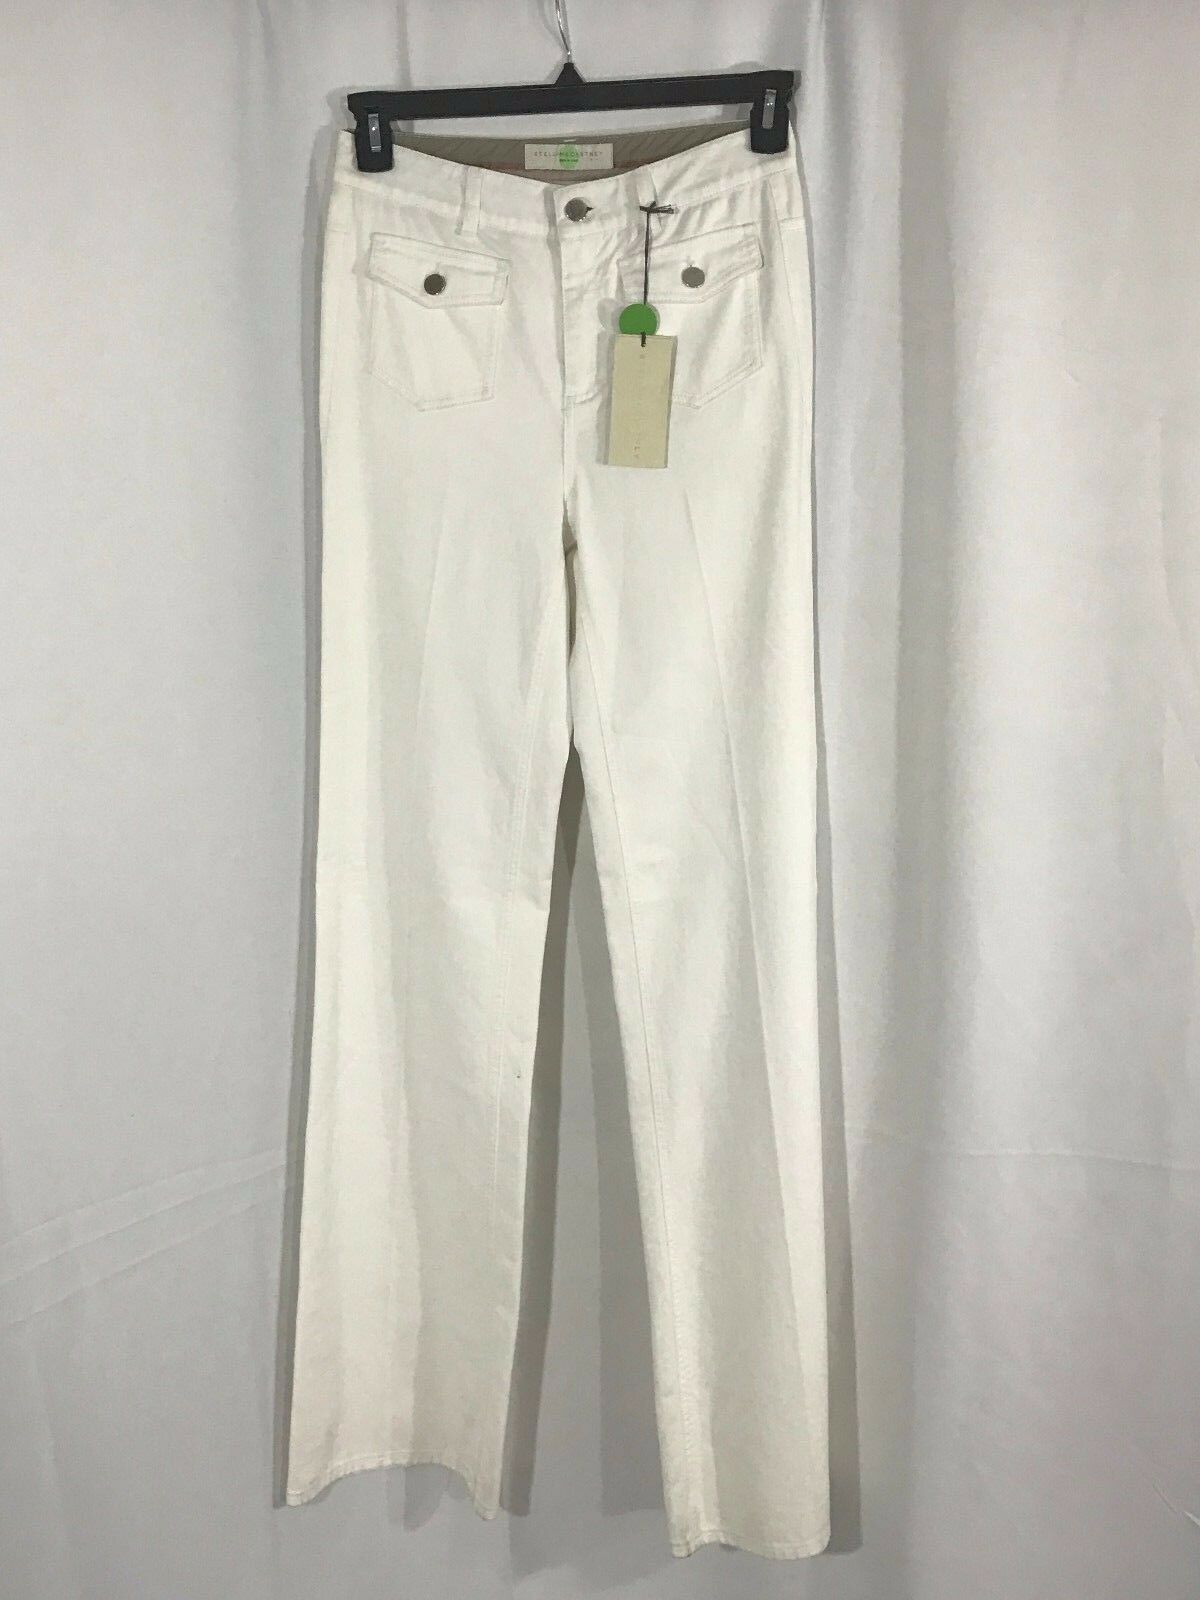 Stella McCartney Weiß Cotton Blend damen Pants 28W X 36L NWT